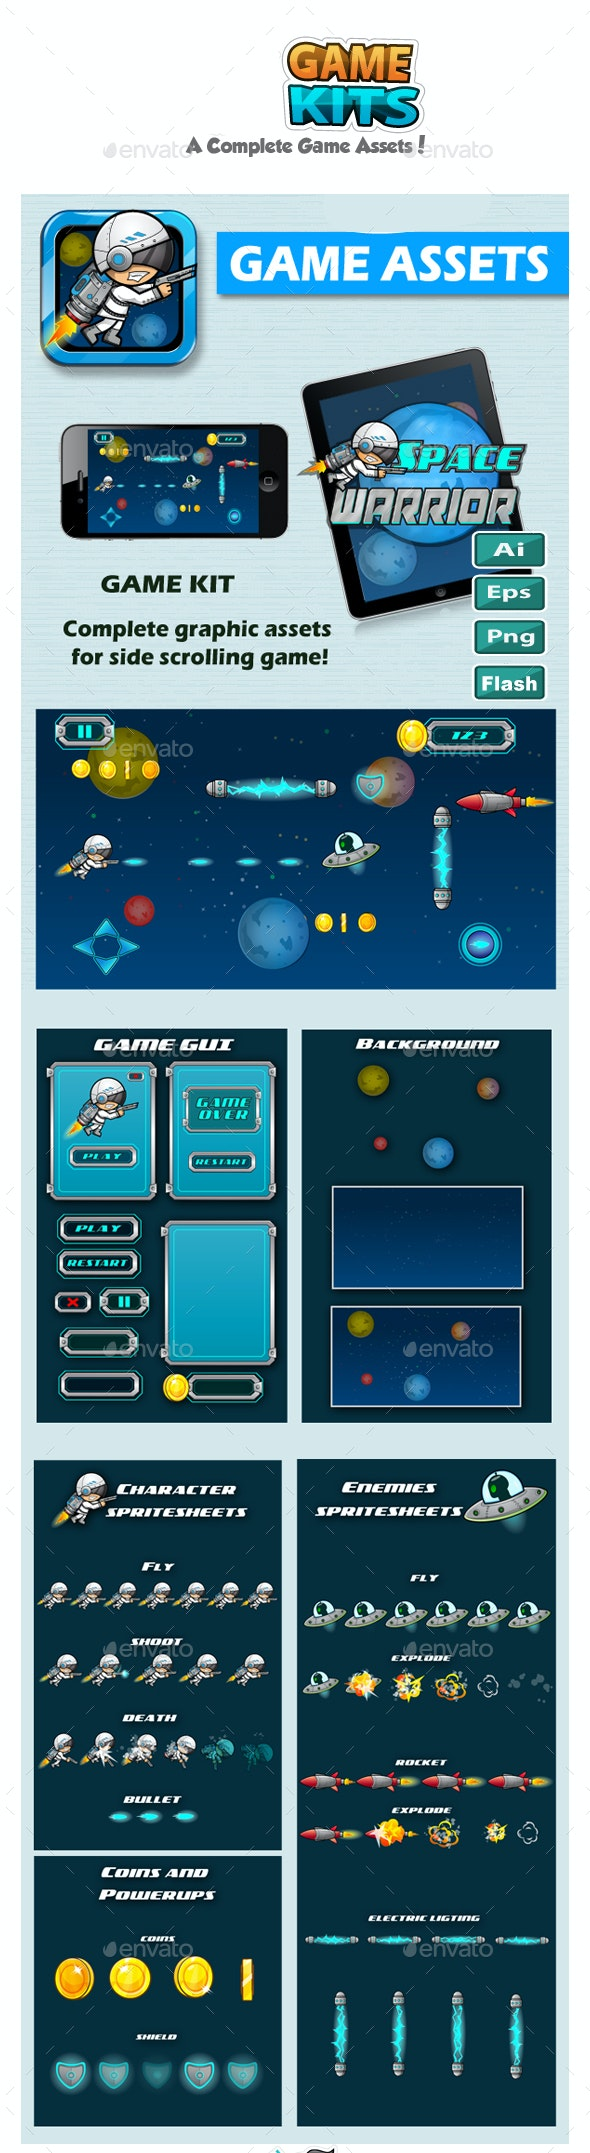 Game Assets - Space Warrior - Game Kits Game Assets